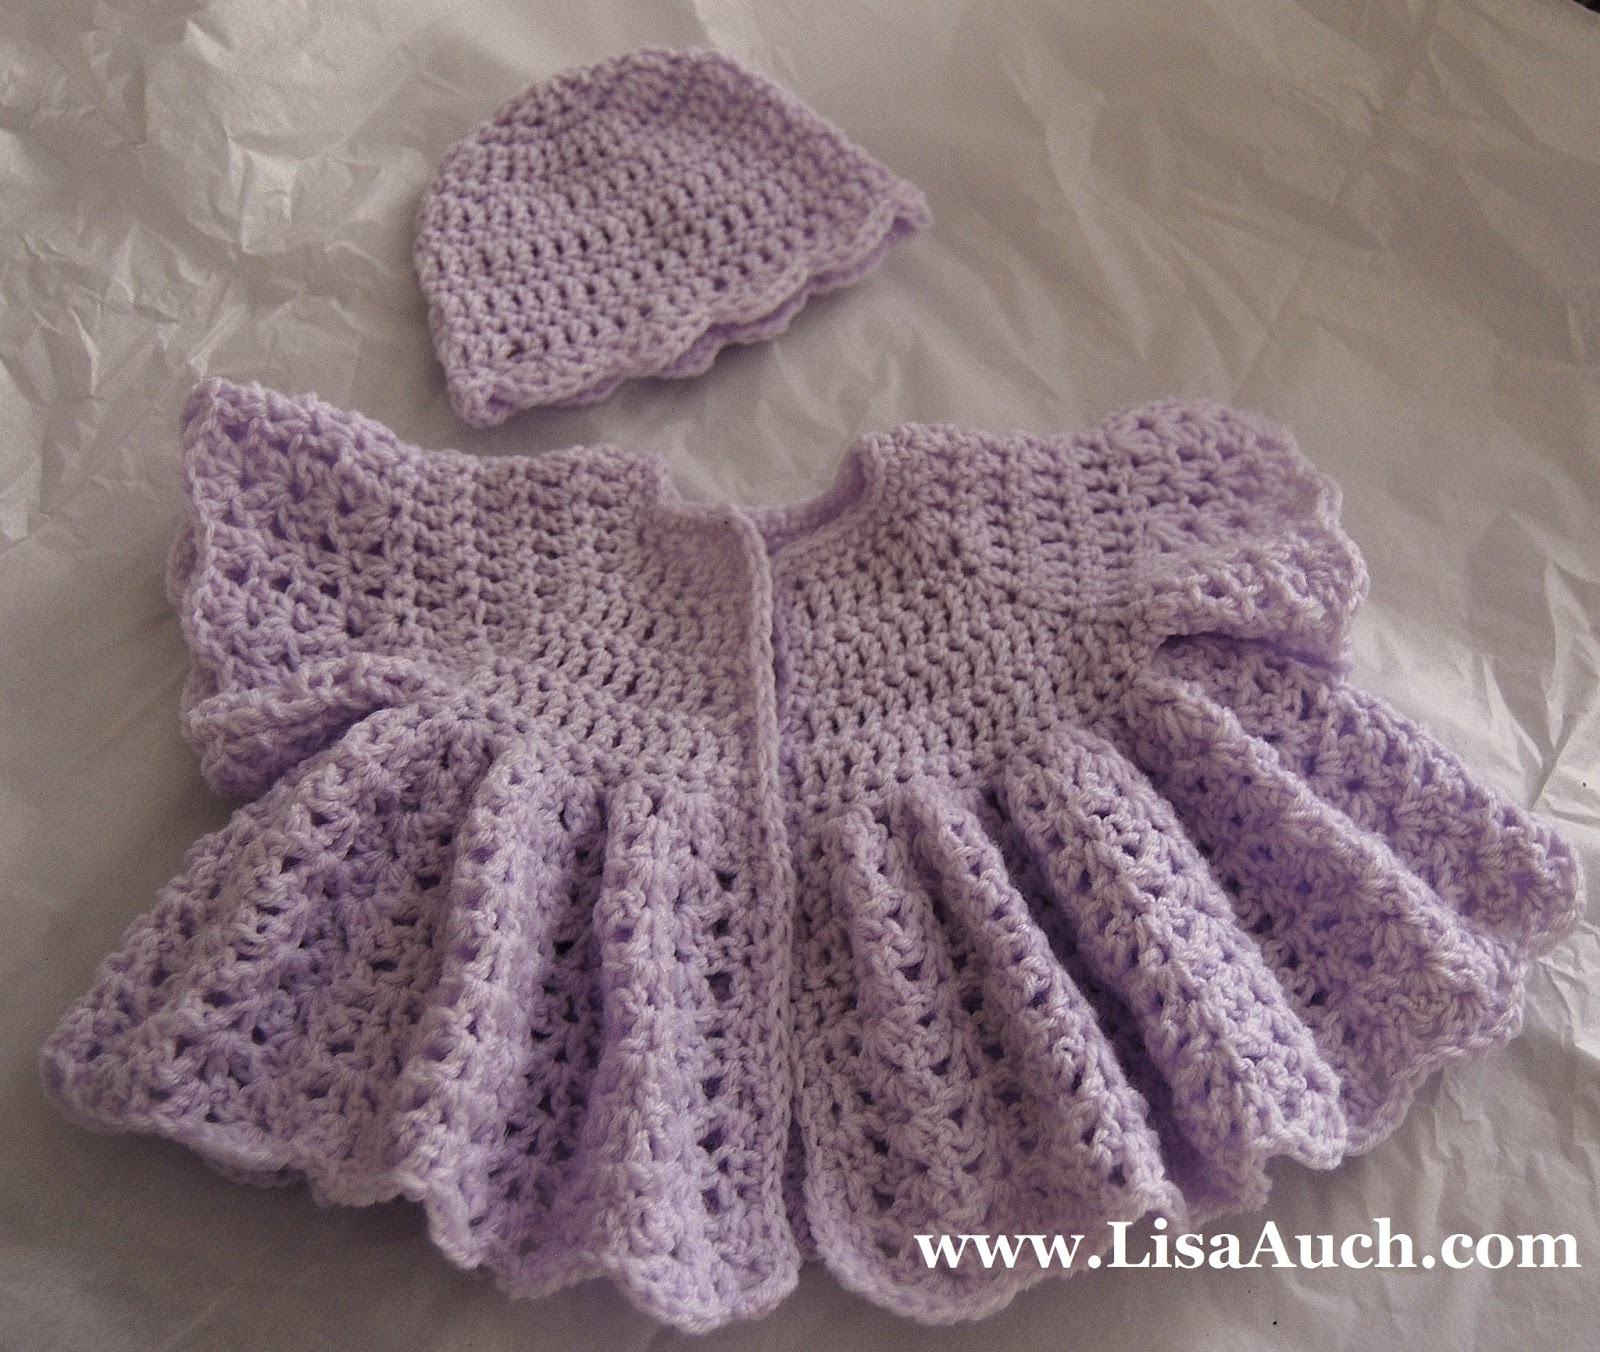 ... Download Free Pictures, Images and Photos Free Baby Crochet Patterns